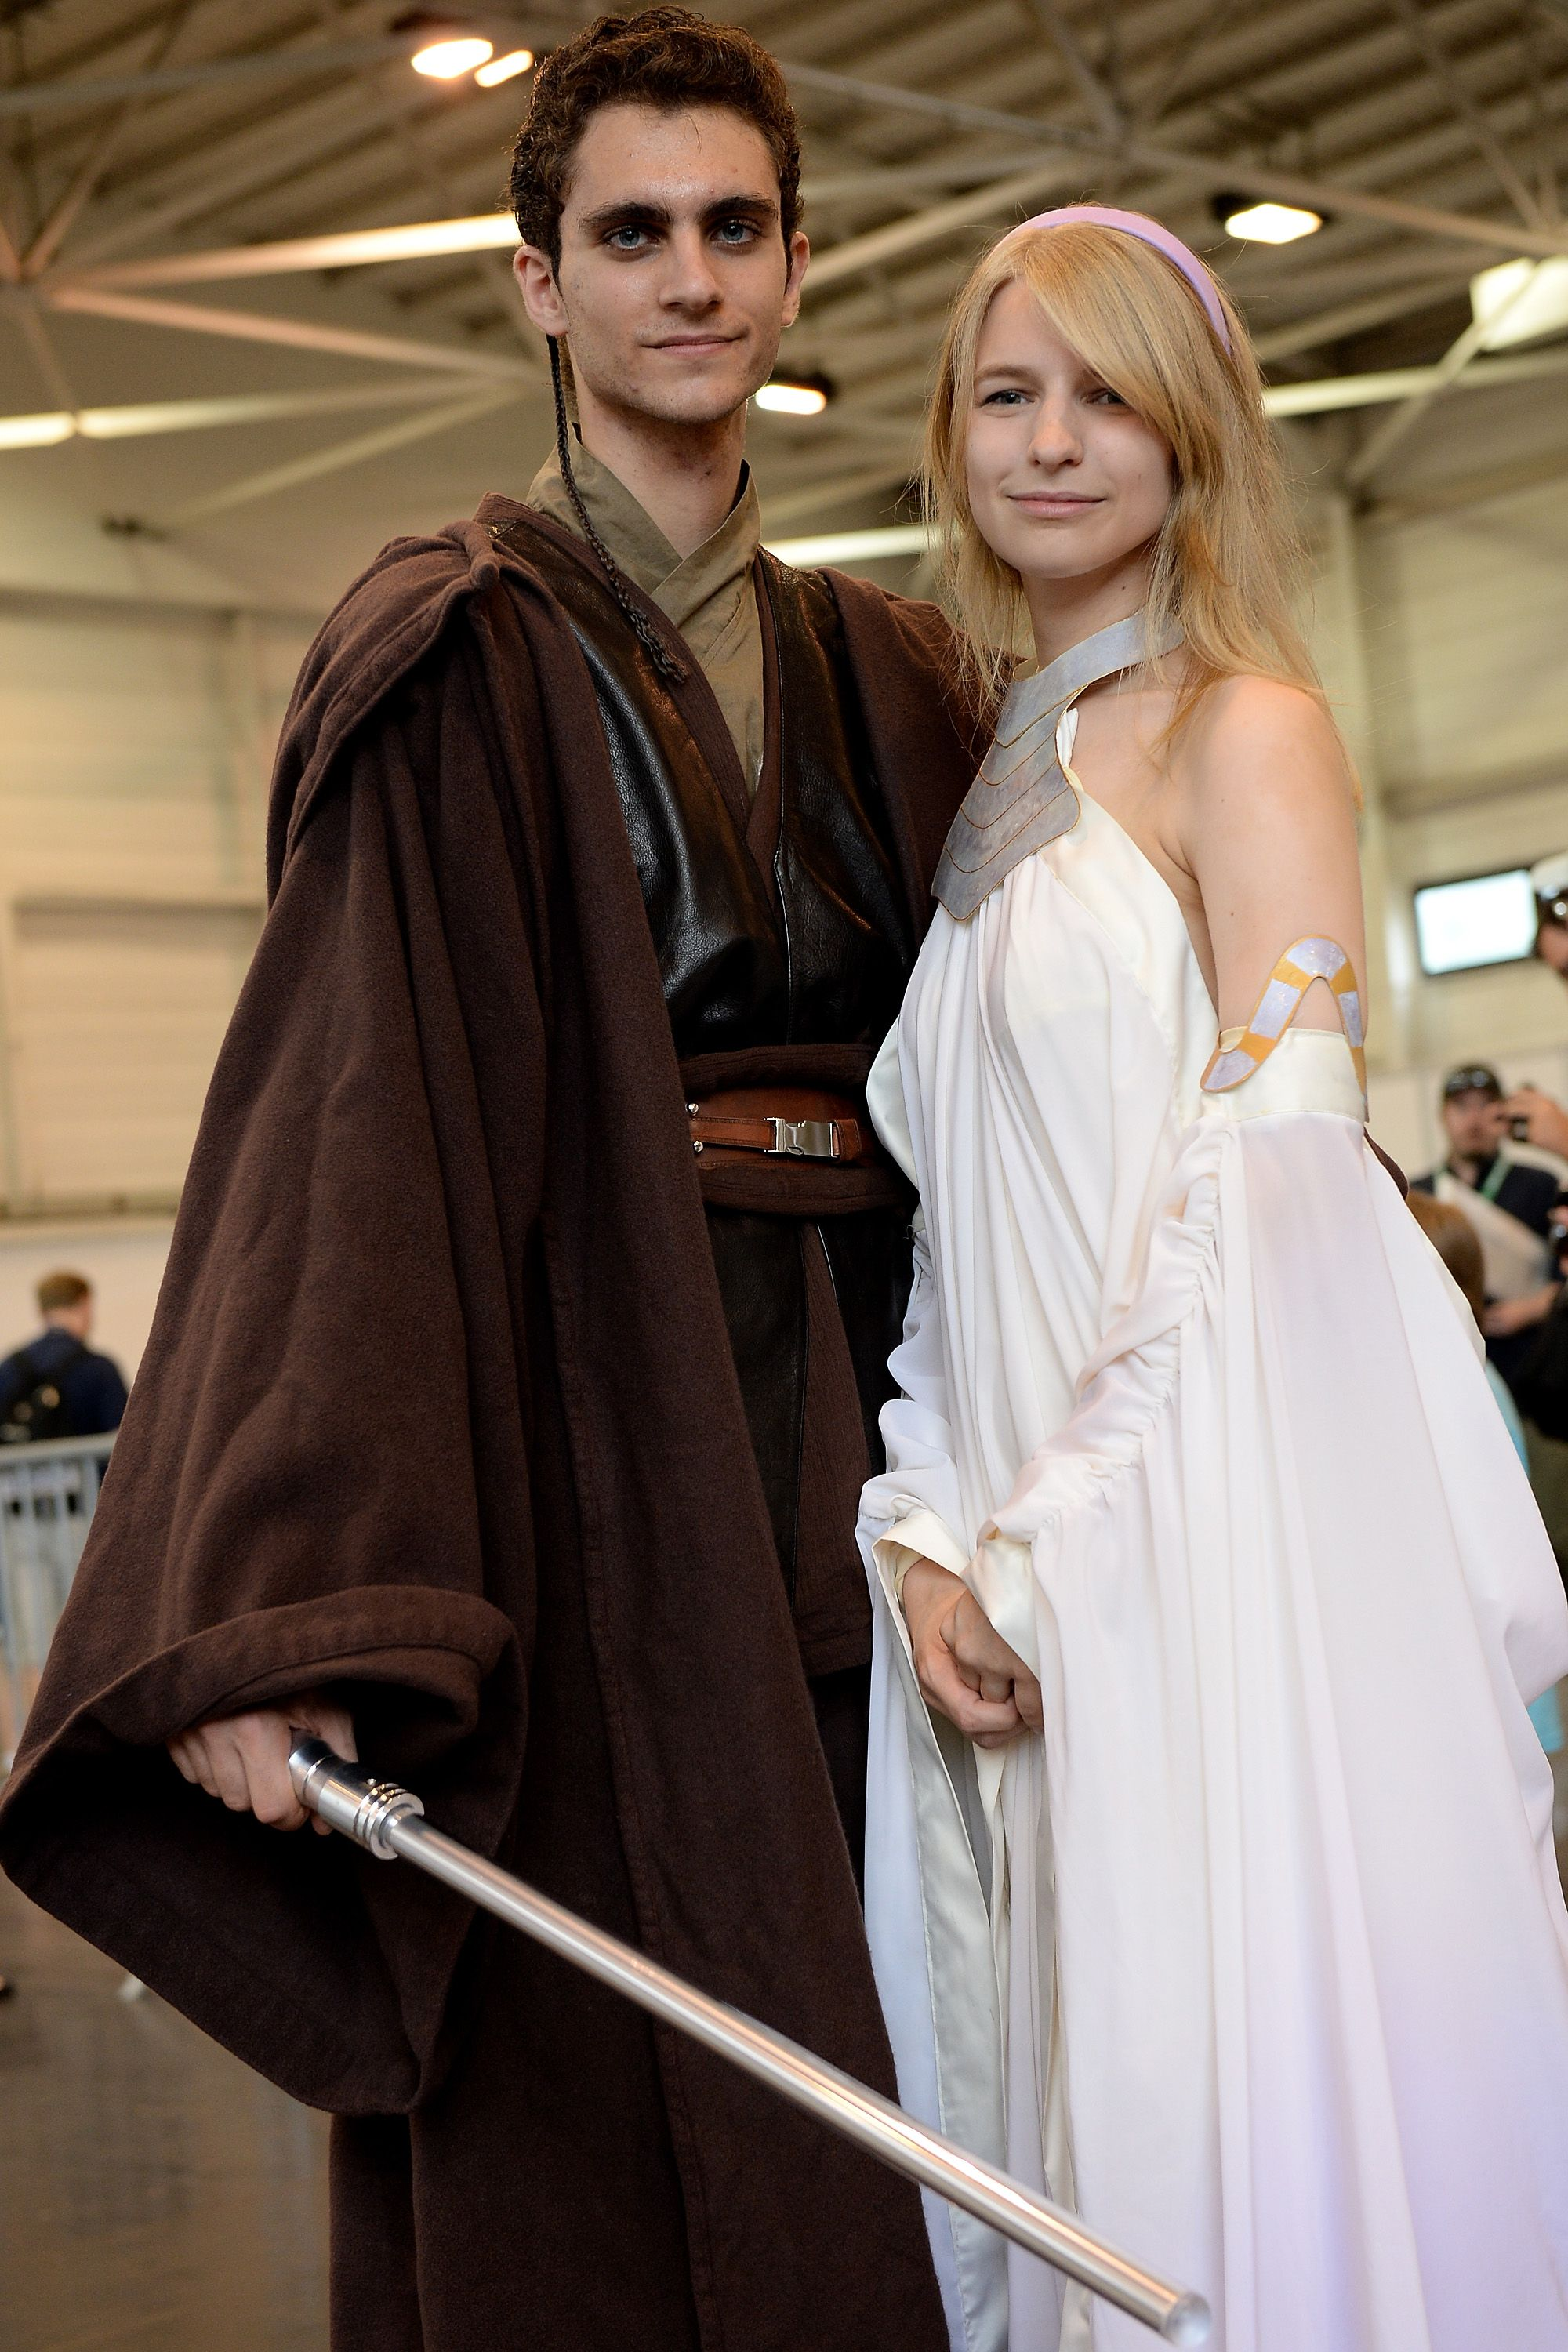 How To Make Homemade Star Wars Costumes Star Wars Wedding Dress